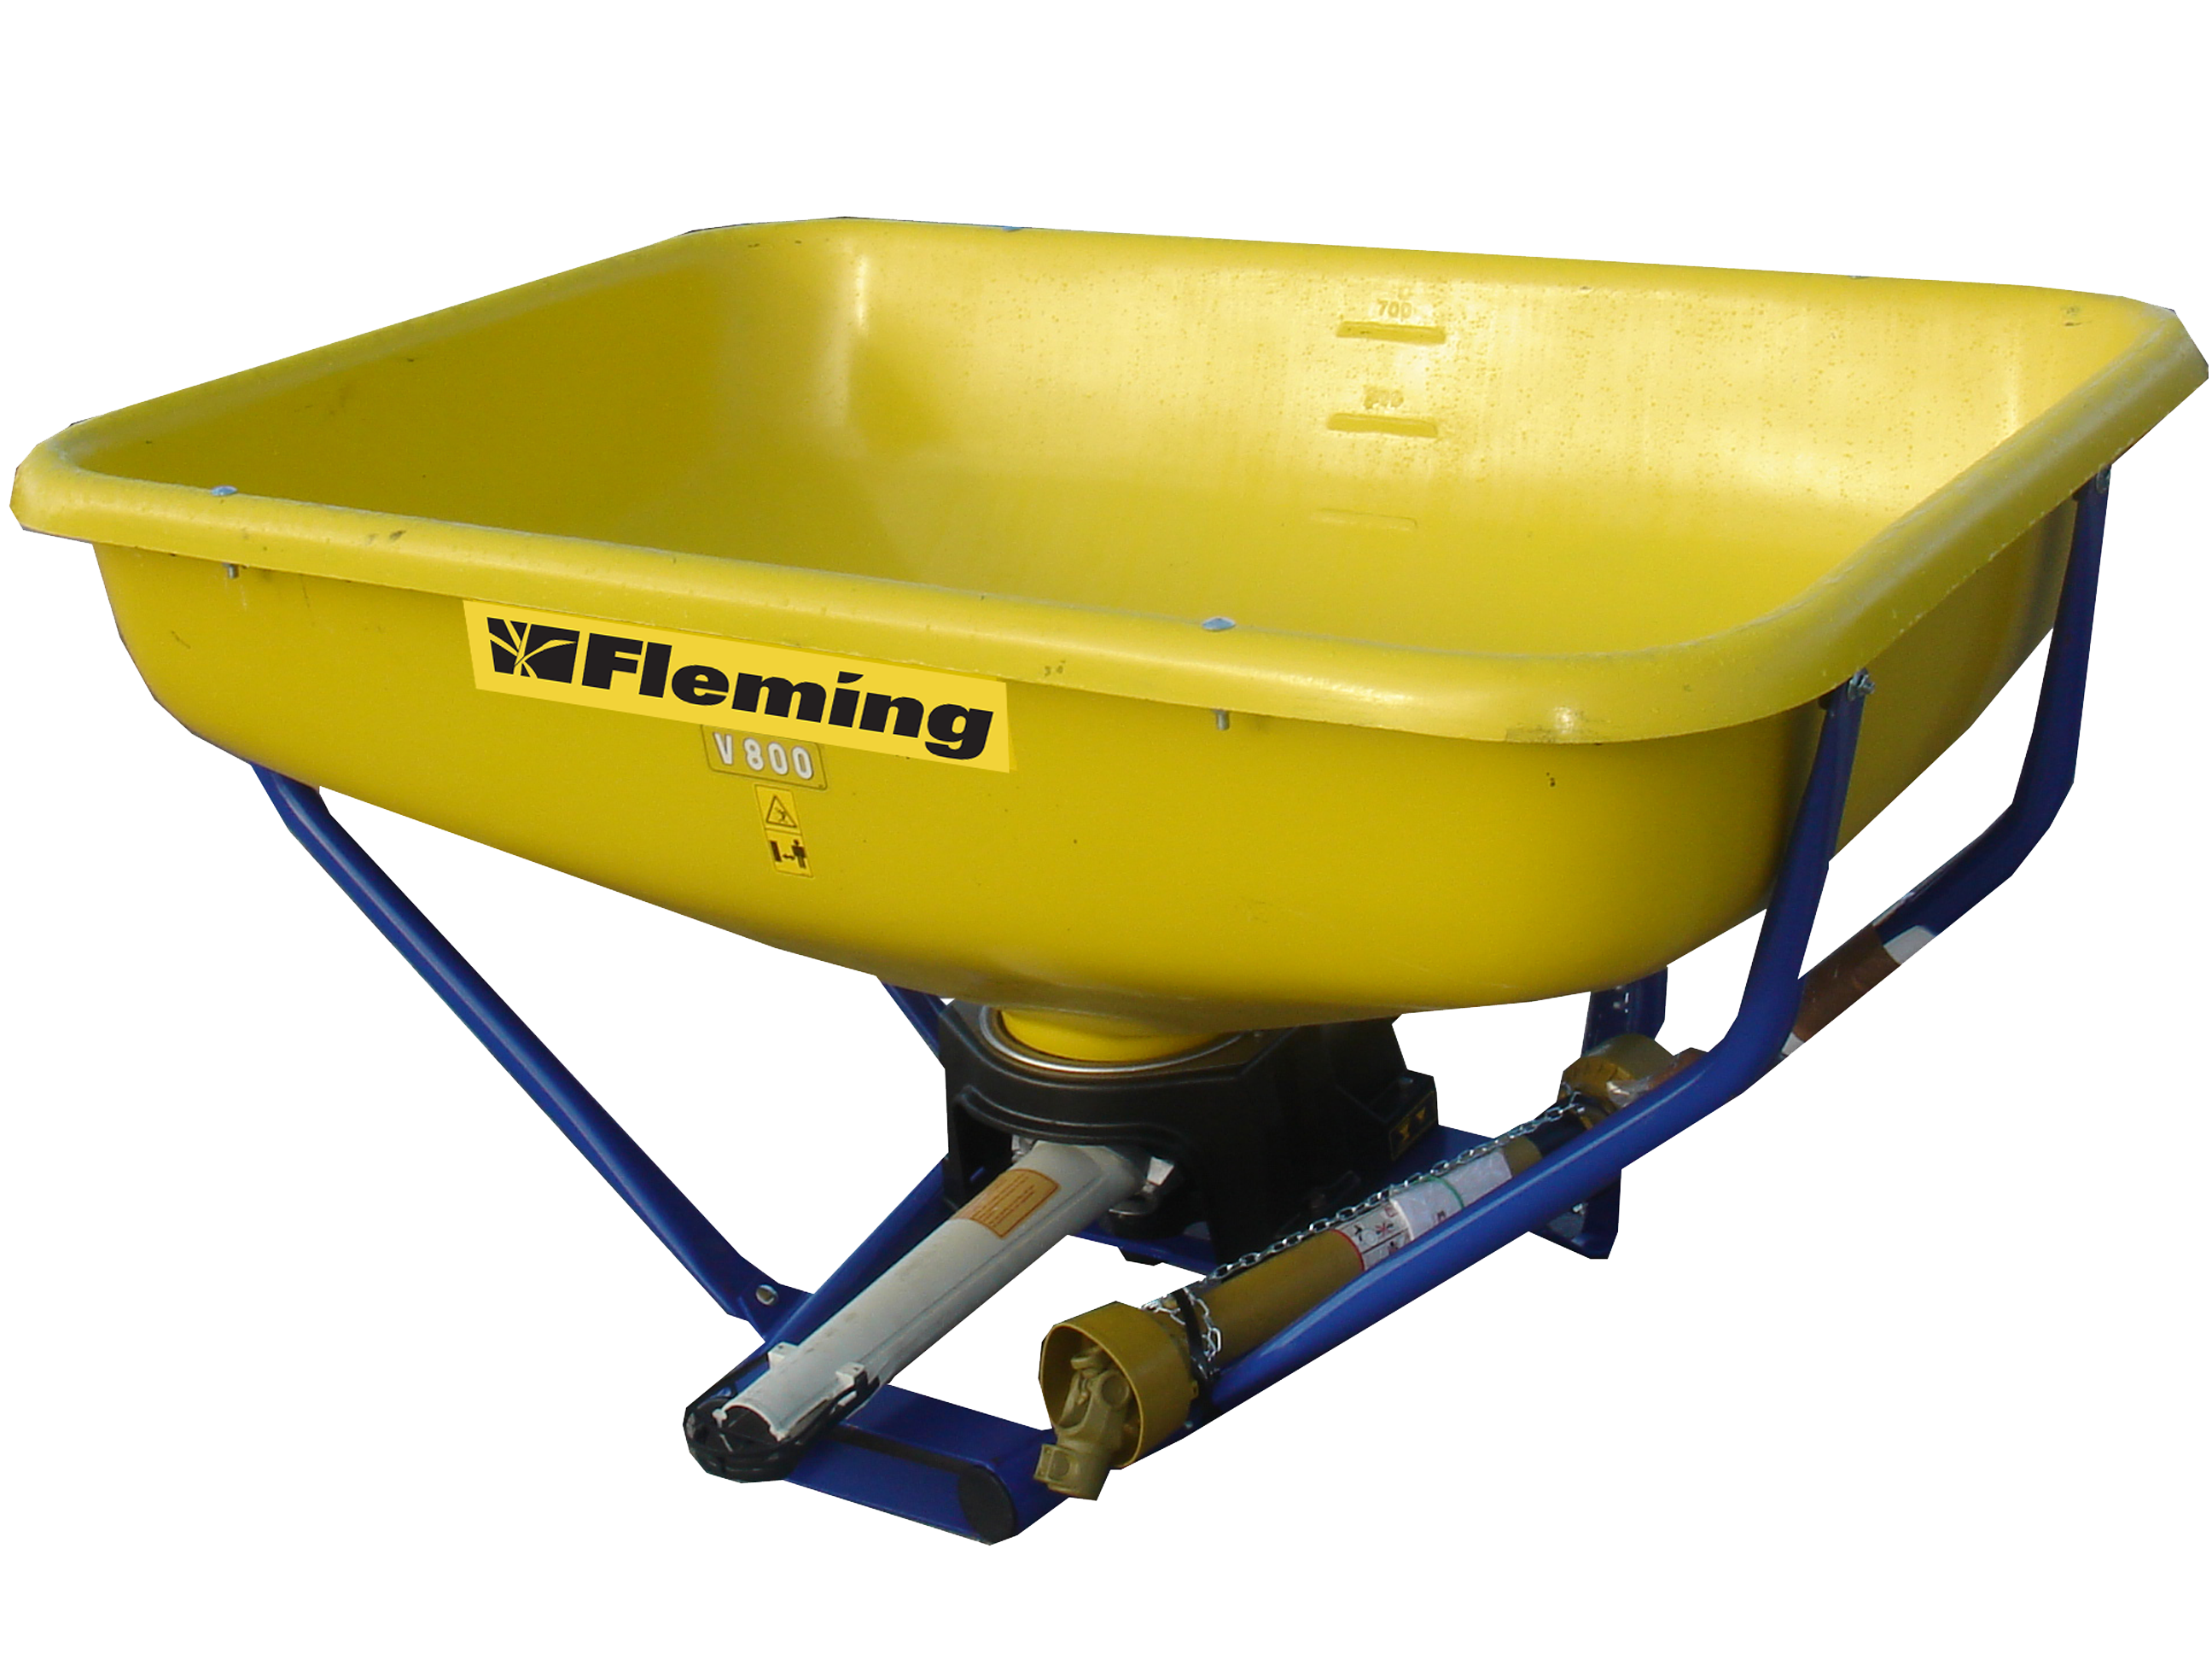 Fertiliser spreader Product Category